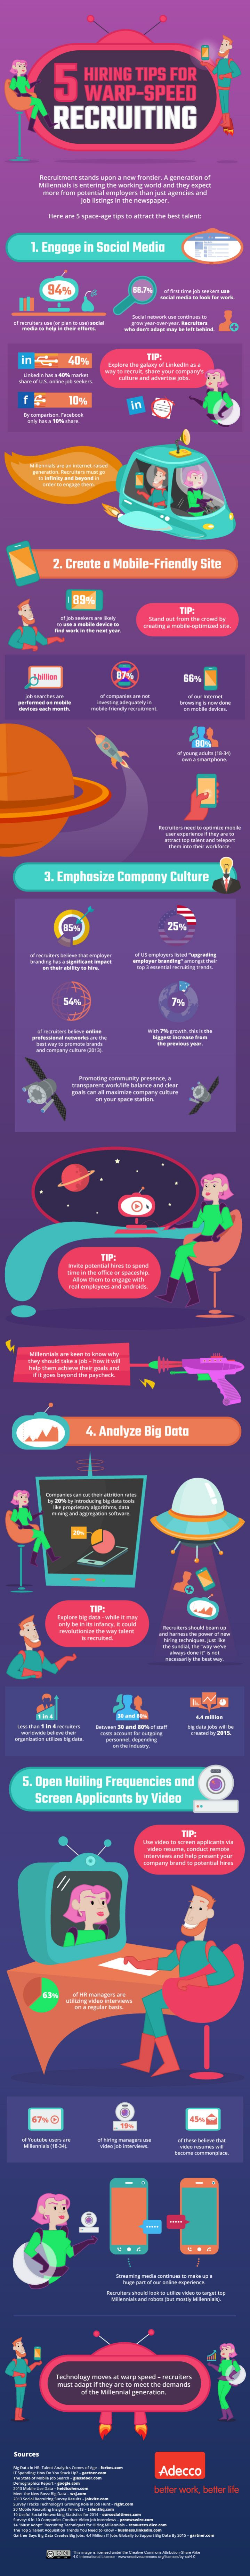 Infographic: 5 Hiring Tips for Warp-Speed Recruiting